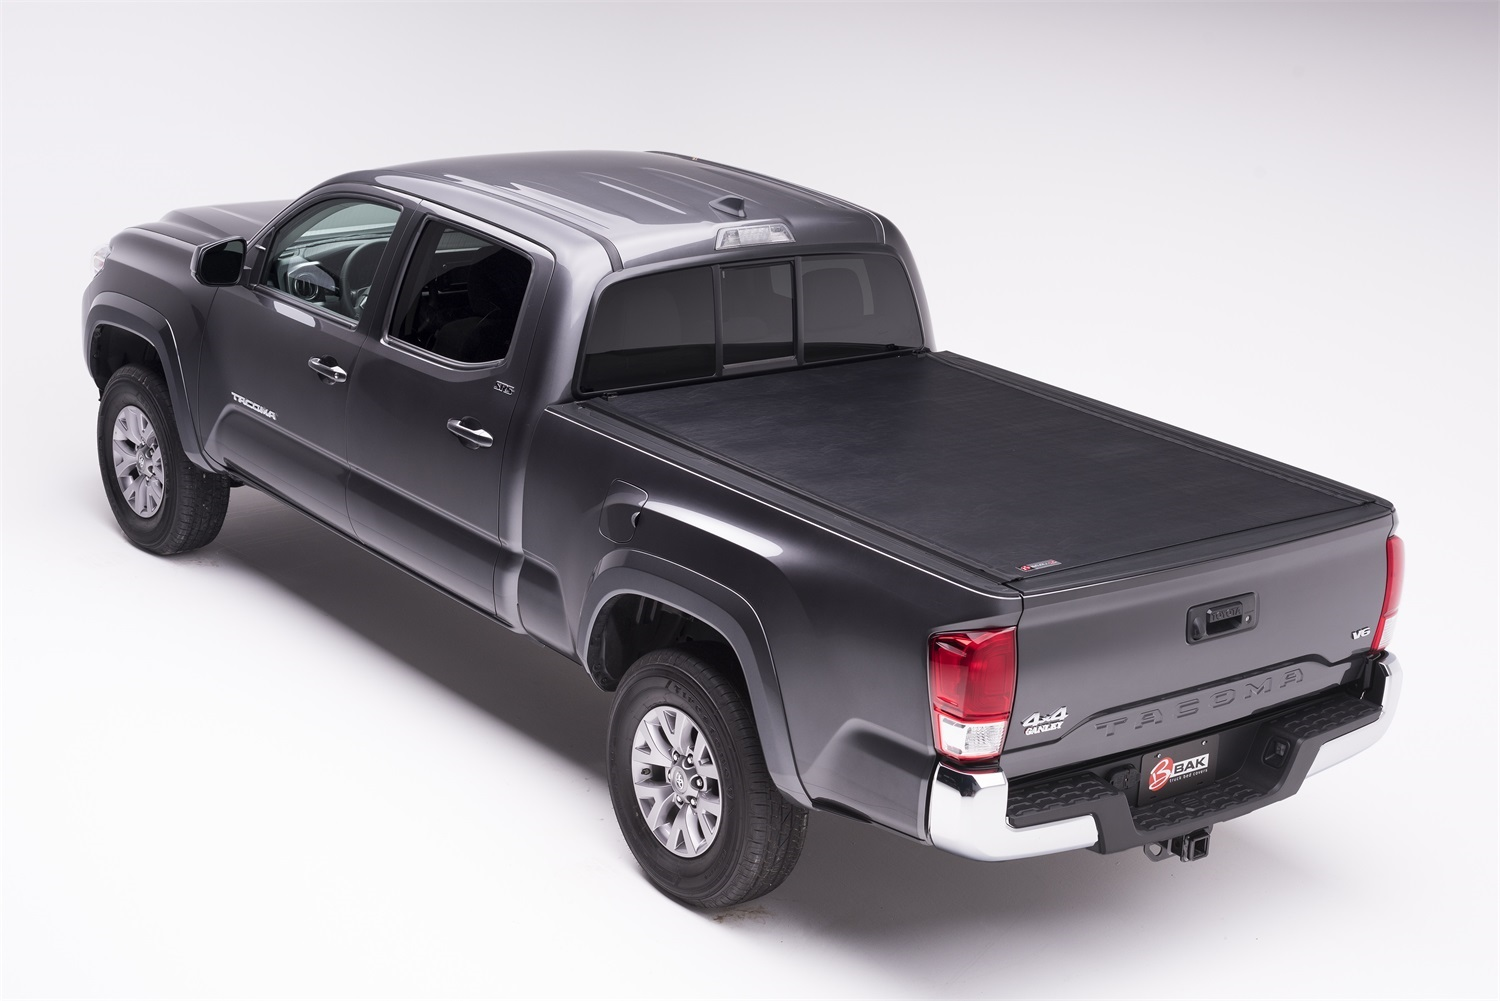 BAK Industries 39426 Revolver X2 Hard Rolling Truck Bed Cover Fits 16-20 Tacoma